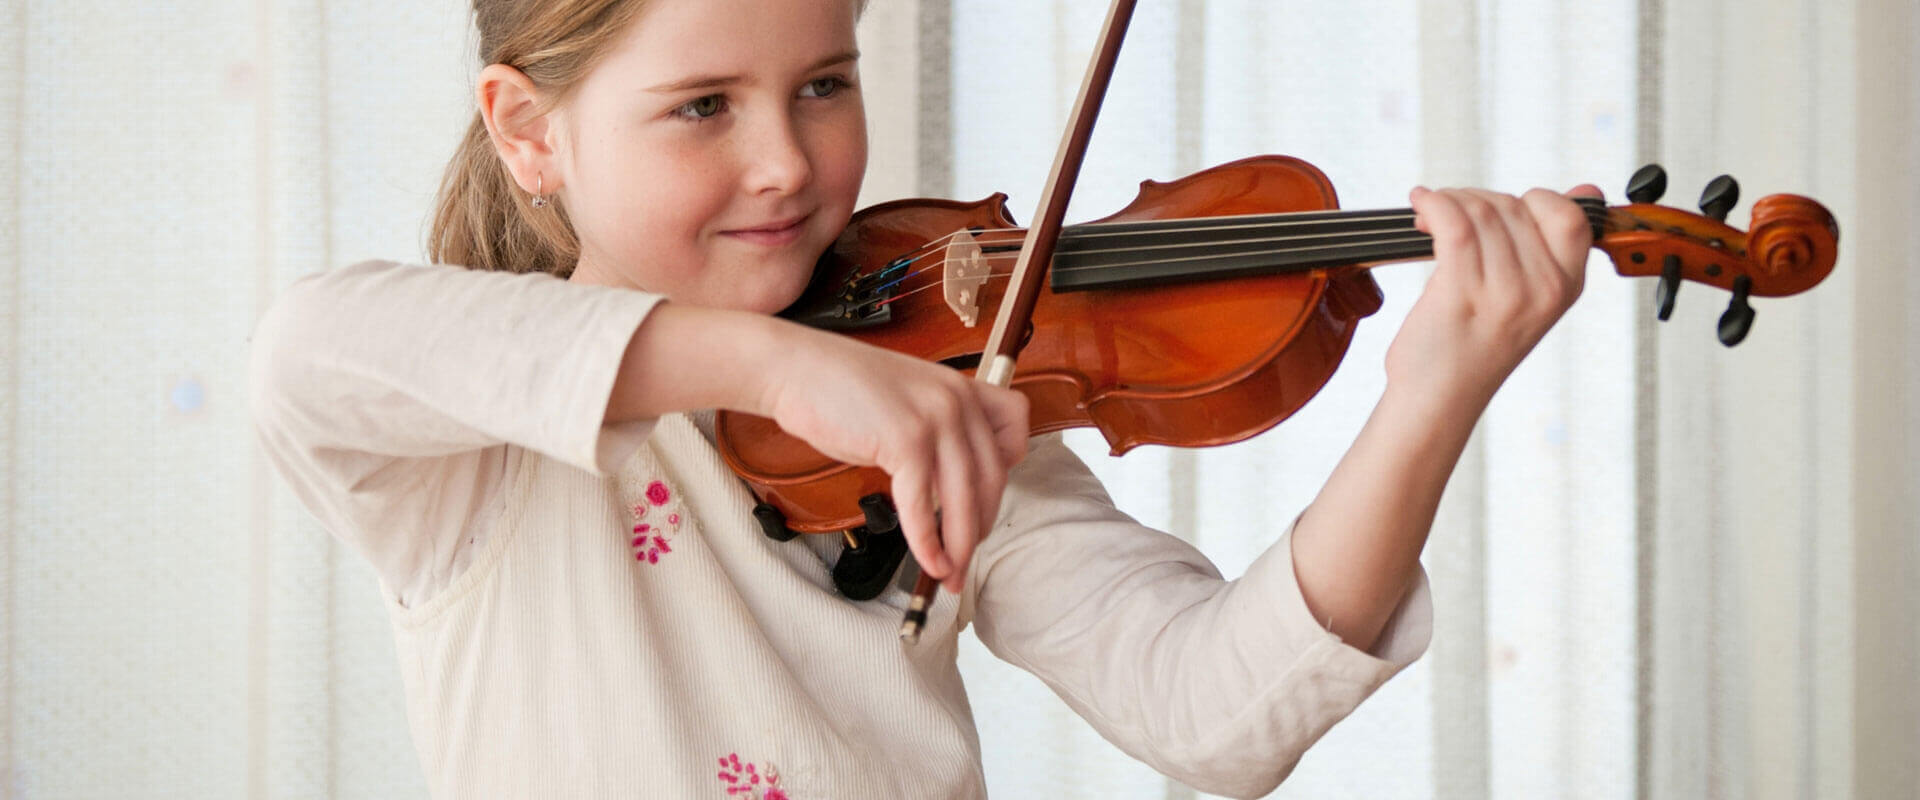 Violin Lessons Norwood, OH